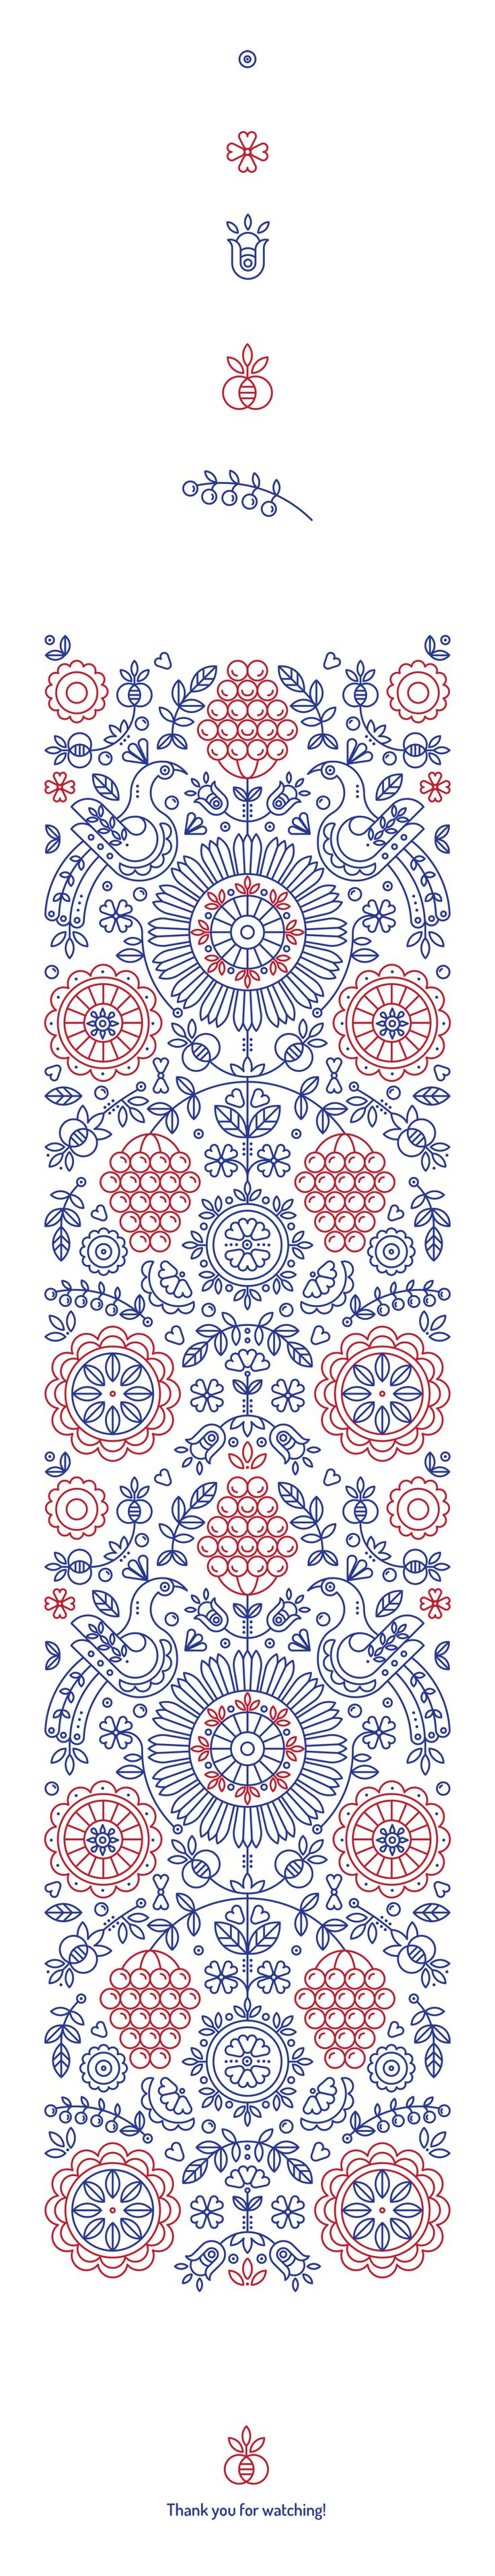 Ethnic pattern based on authentic symbols of classic Ukrainian drawings, by Maria Pastykh.